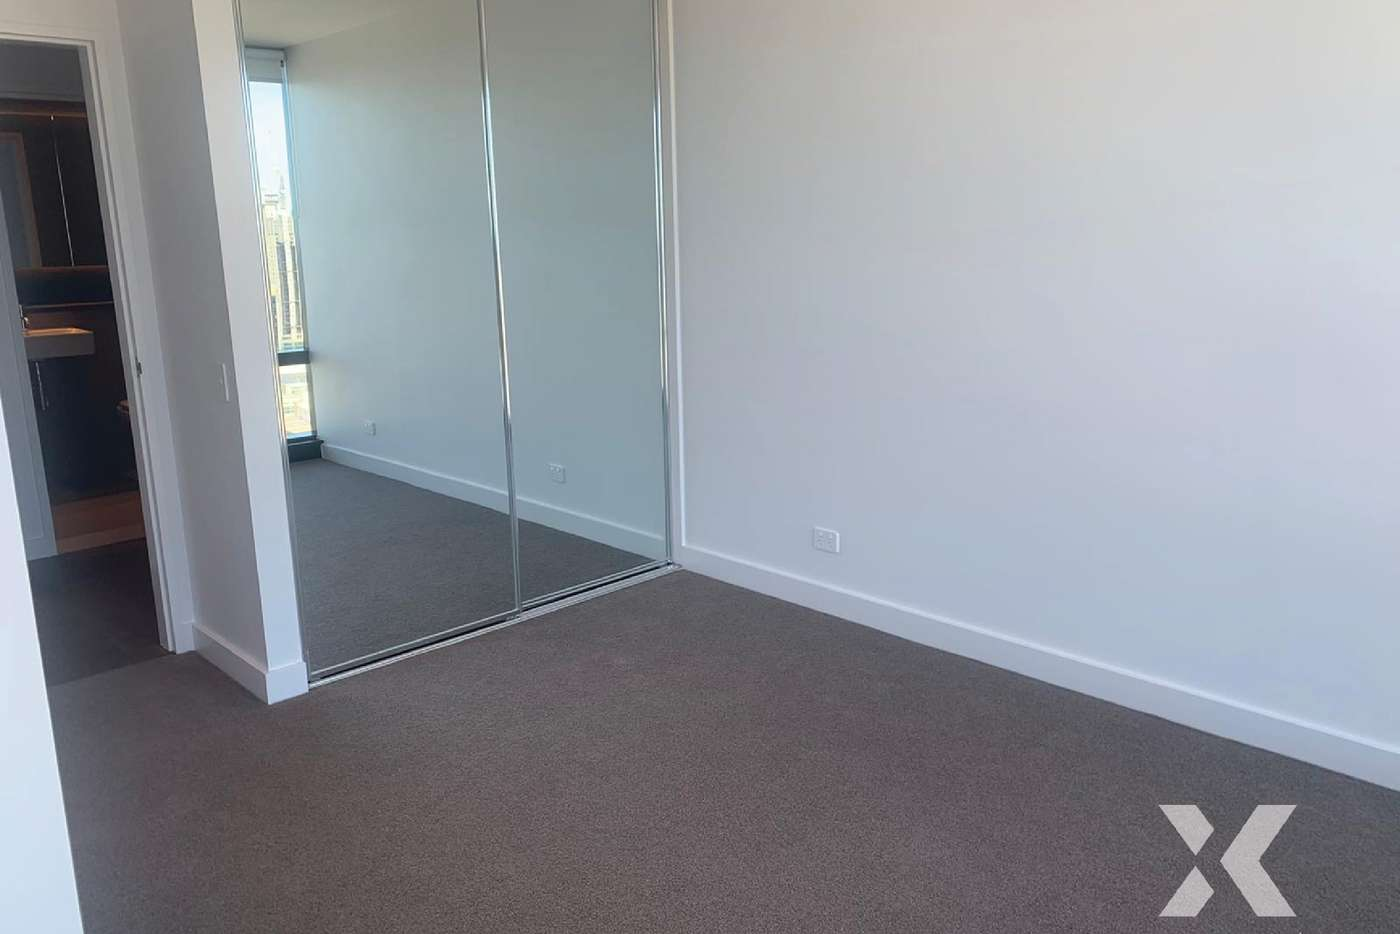 Sixth view of Homely apartment listing, 2811/628 Flinders Street, Docklands VIC 3008